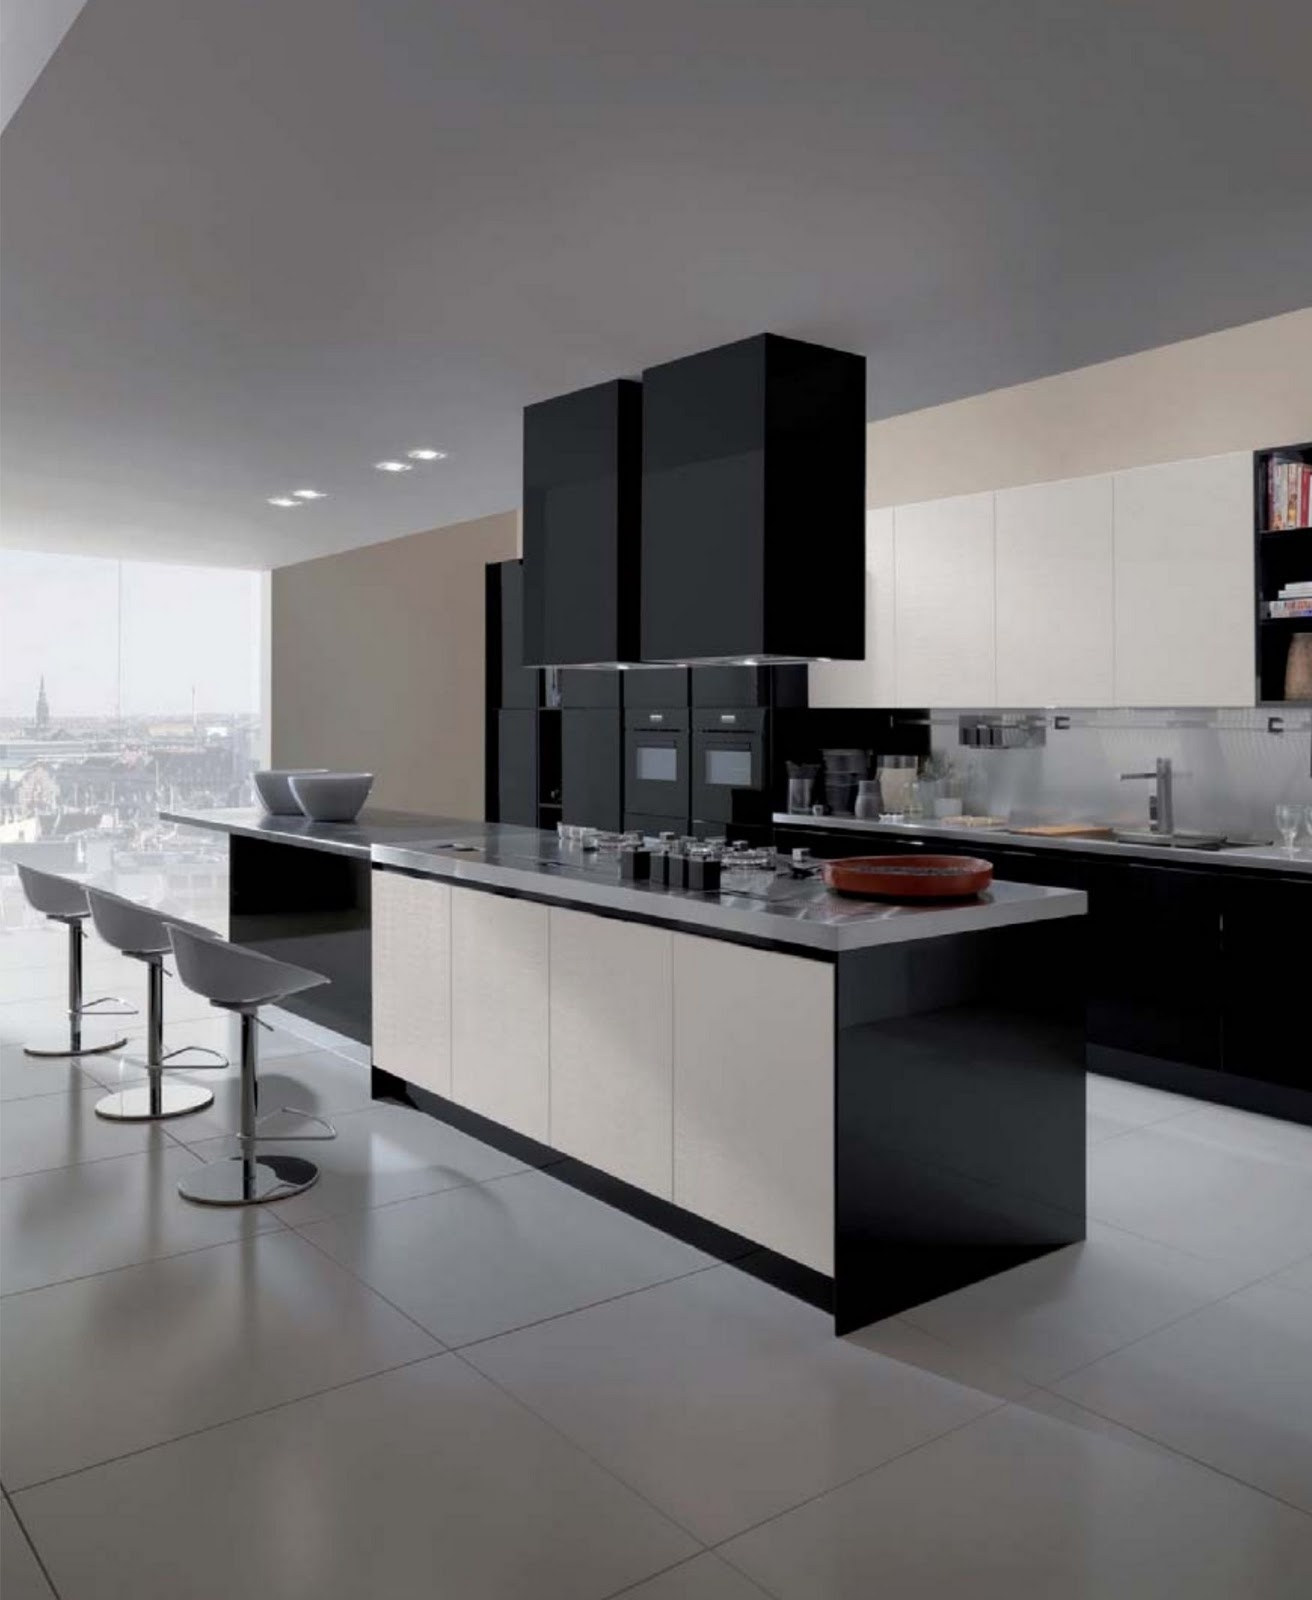 Dise o de interiores ram n mart tendencias cocinas for Muebles de vanguardia